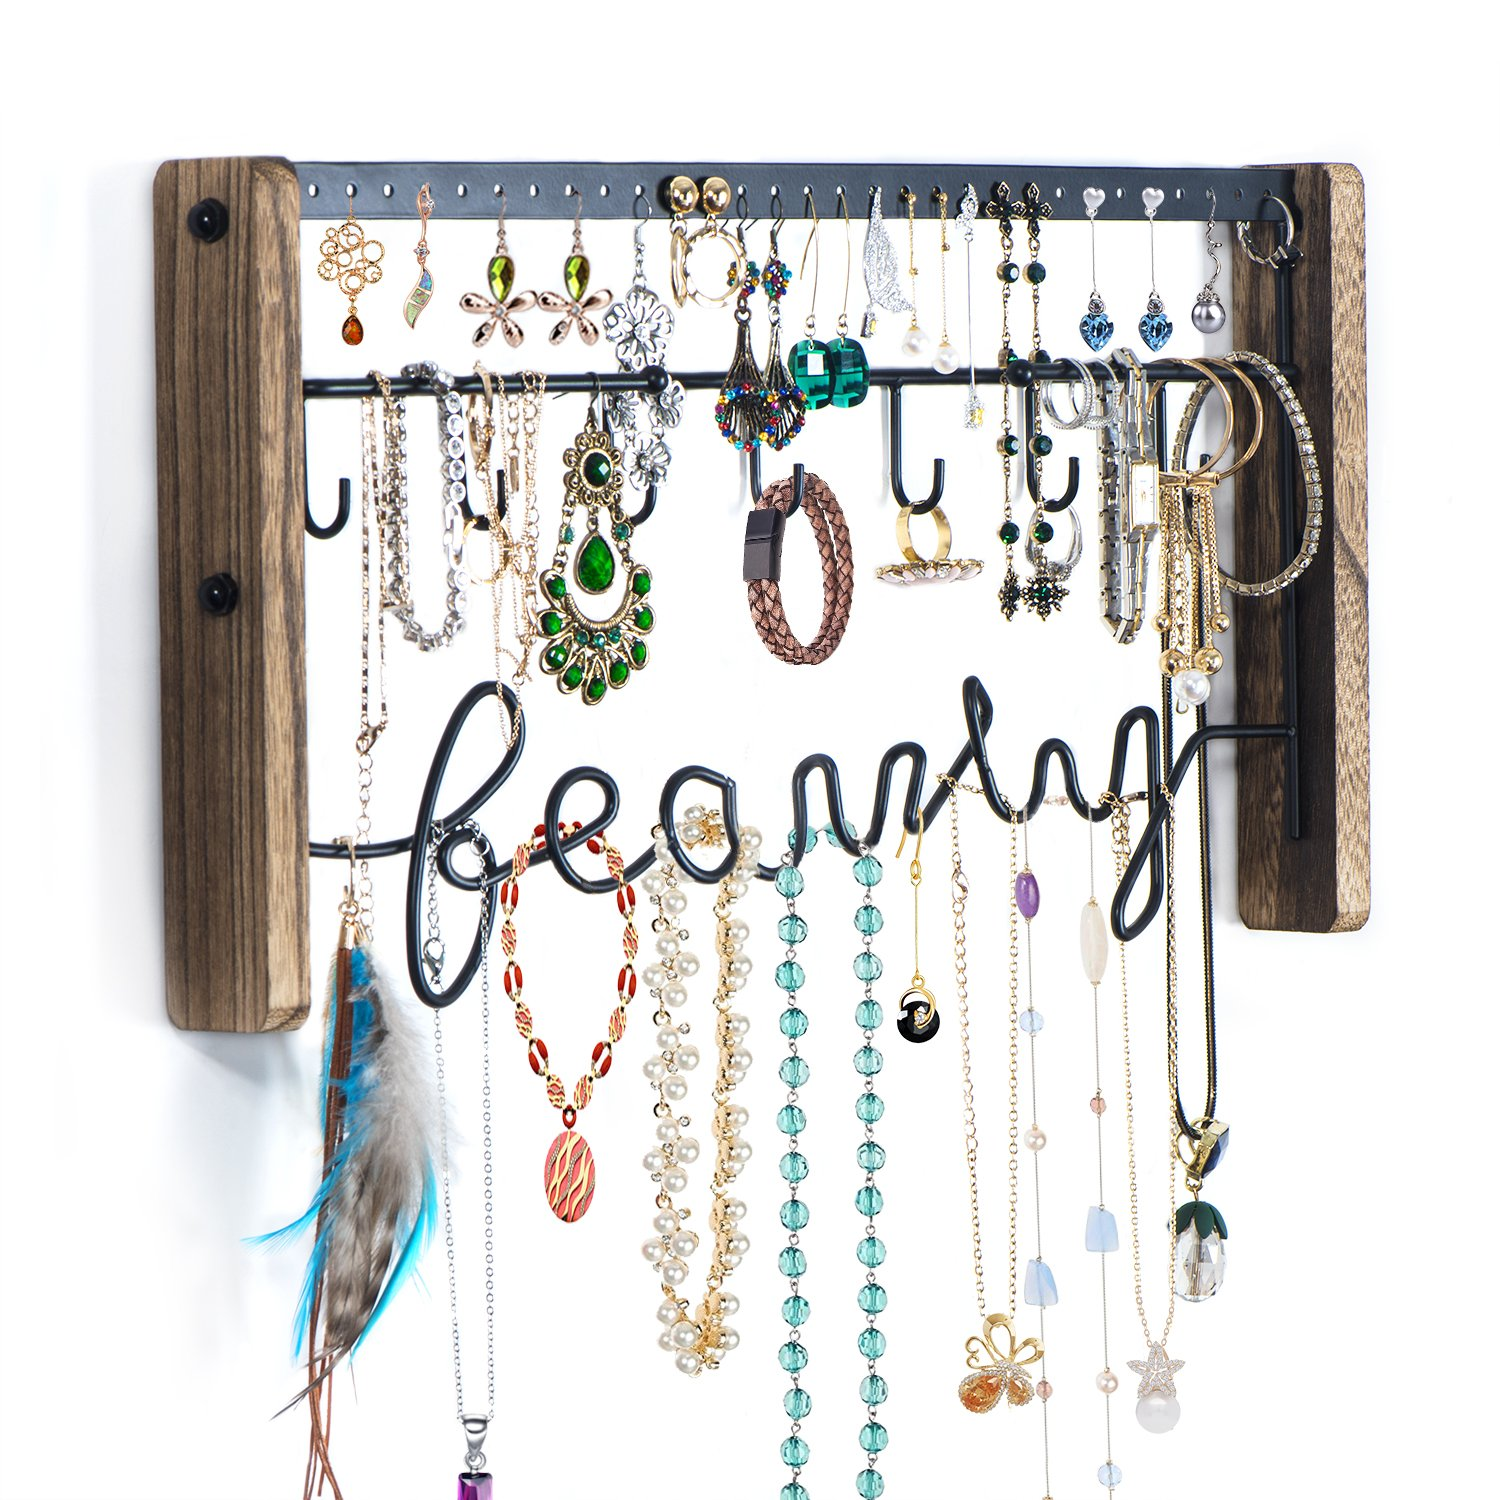 Love-KANKEI Jewelry Organizer Wall Mount - Black Metal & Rustic Wood Necklace Organizer Holder for Earrings Rings Bracelets and Necklaces by Love-KANKEI (Image #6)